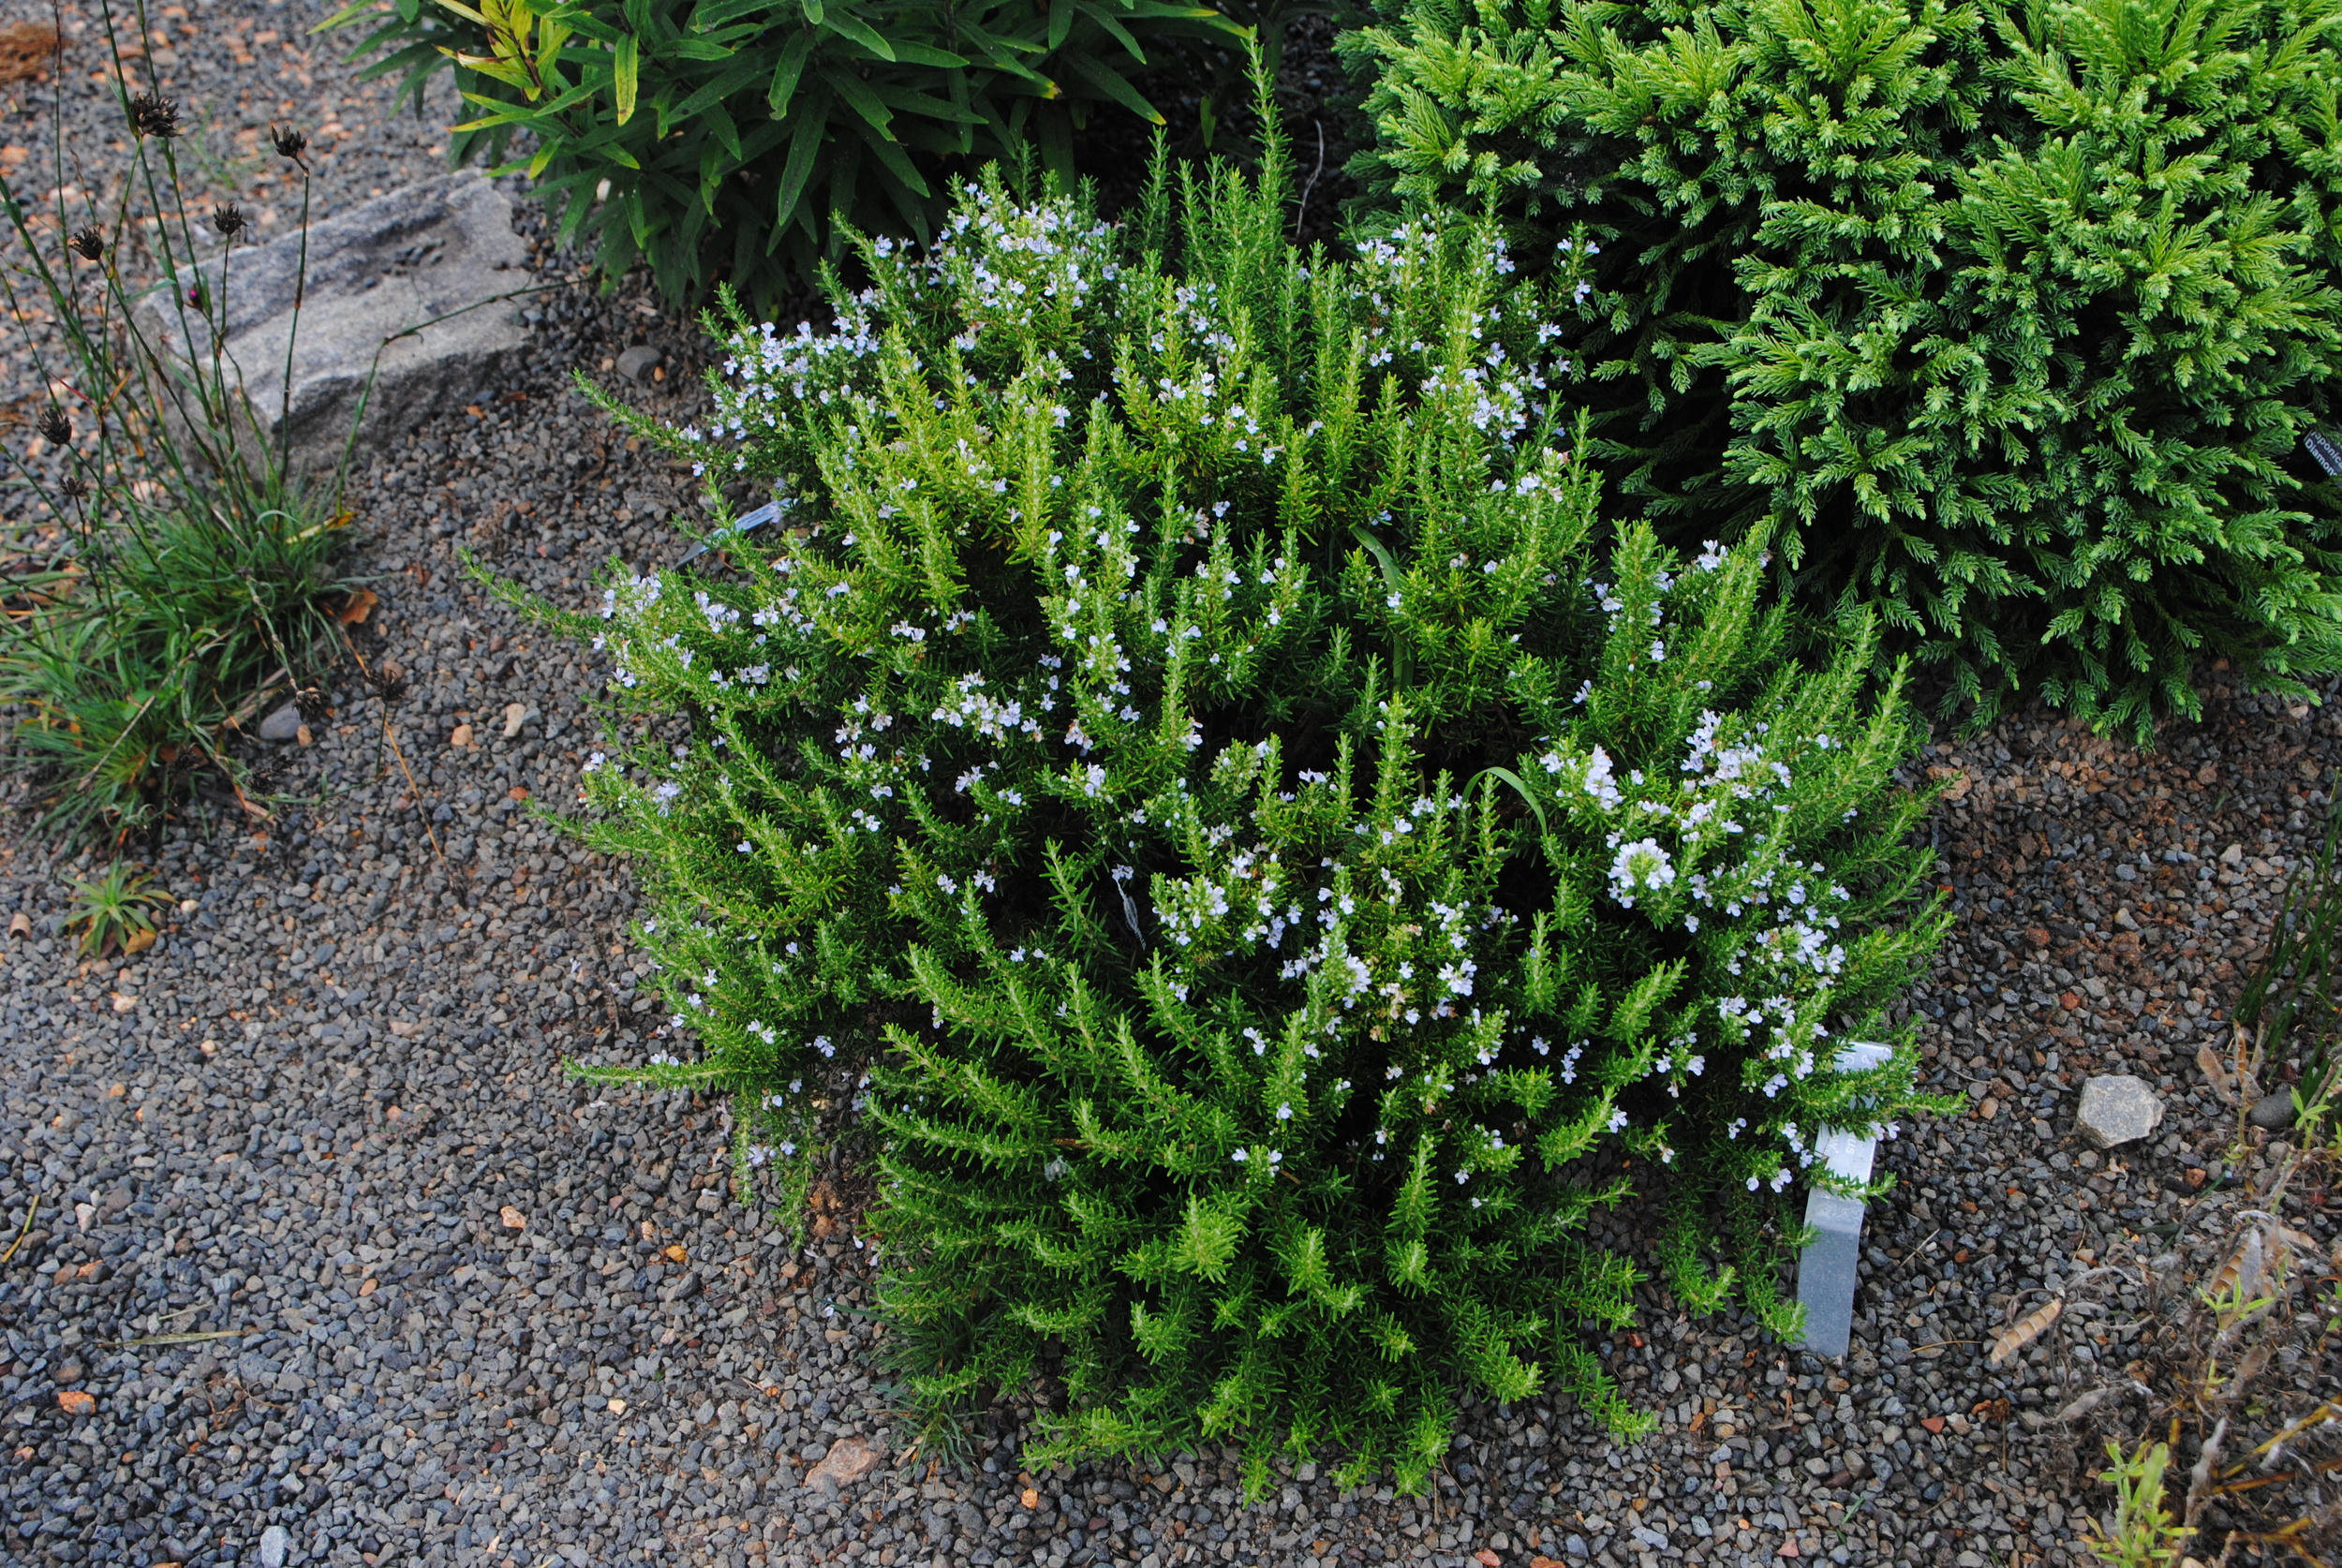 The tight, dwarf habit of this rosemary makes it perfect for containers and small gardens.